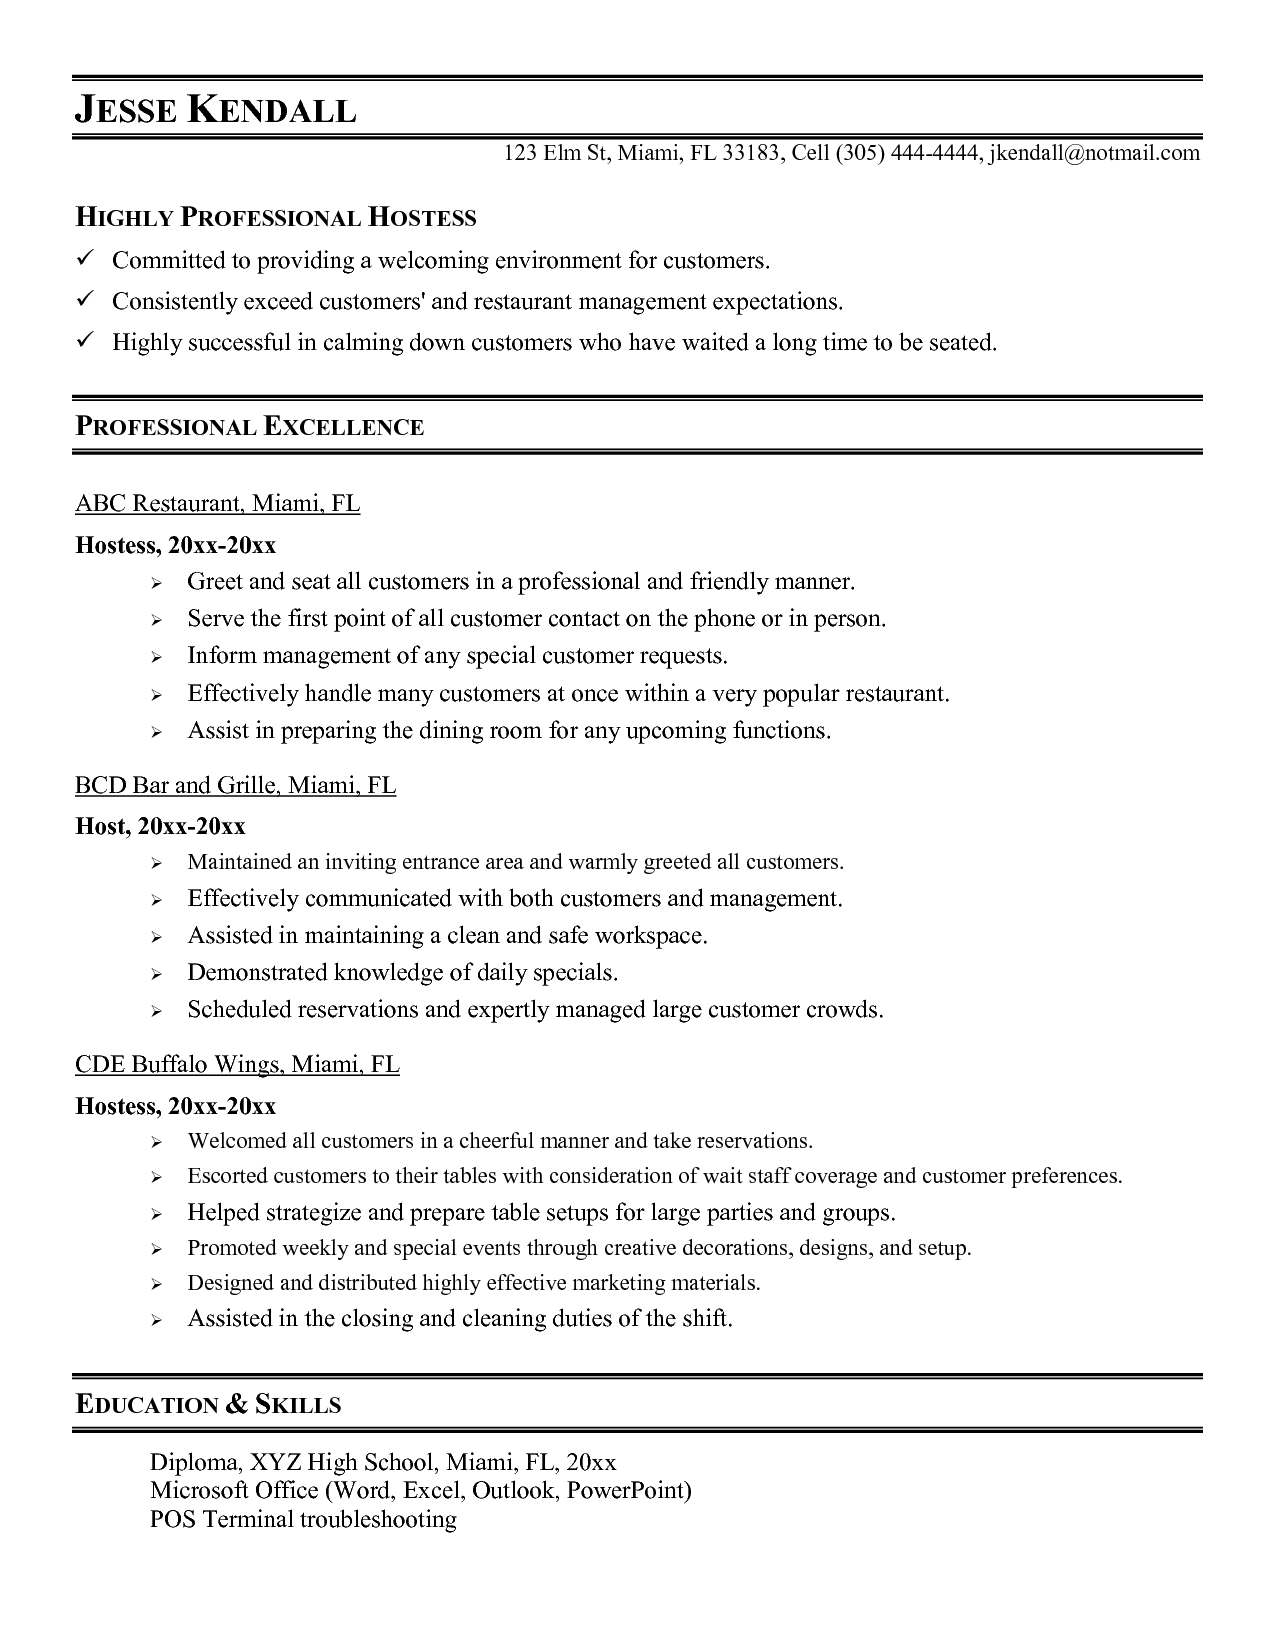 sample resume for hostess resume cv cover letter example hostess. Resume Example. Resume CV Cover Letter